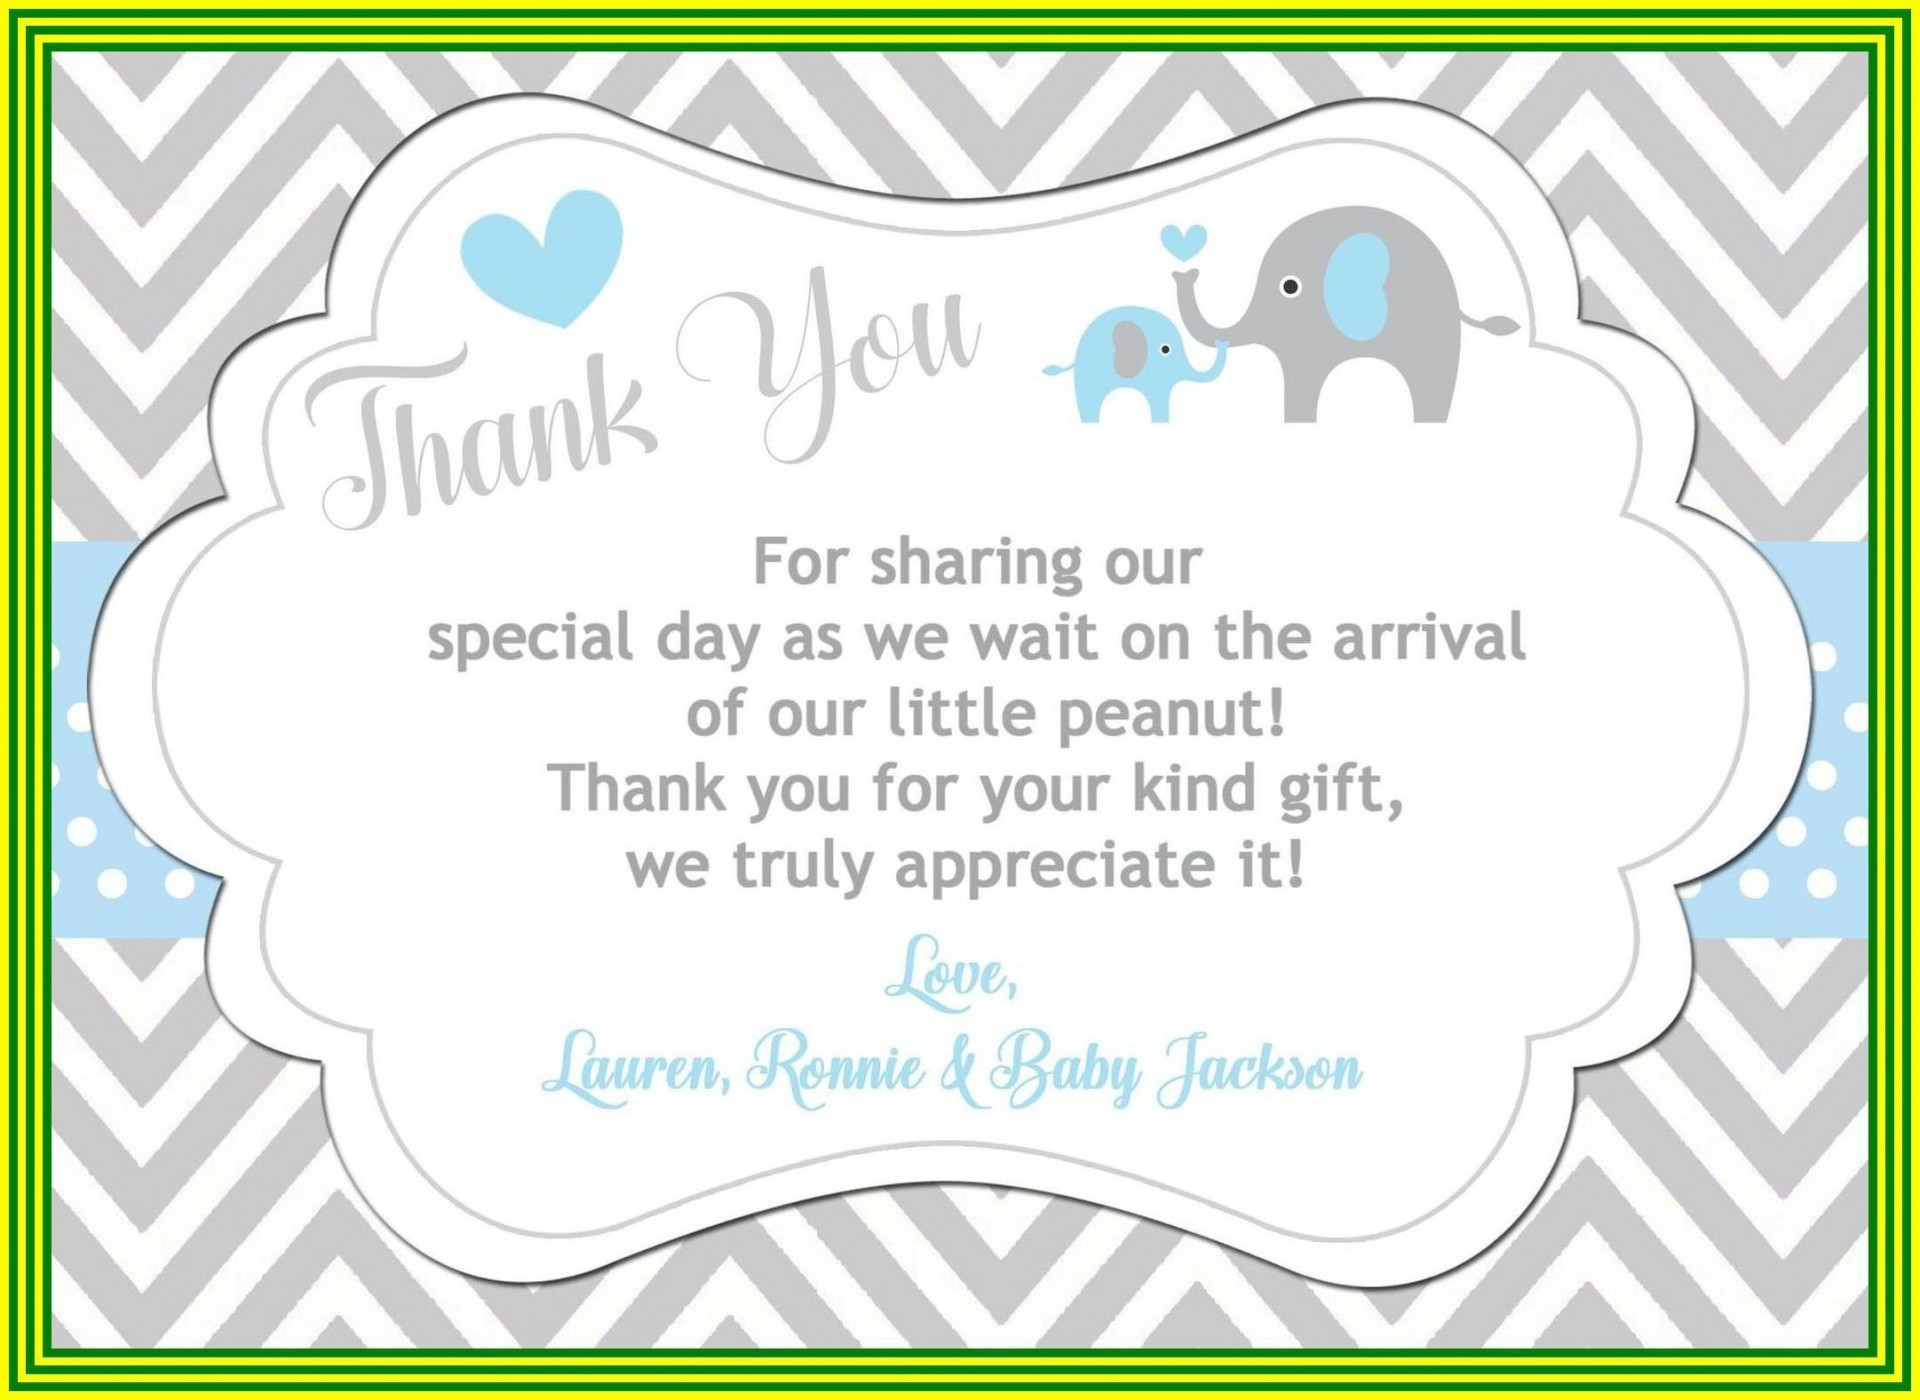 000 Exceptional Thank You Card Wording Baby Shower Gift Concept  For Multiple Group1920